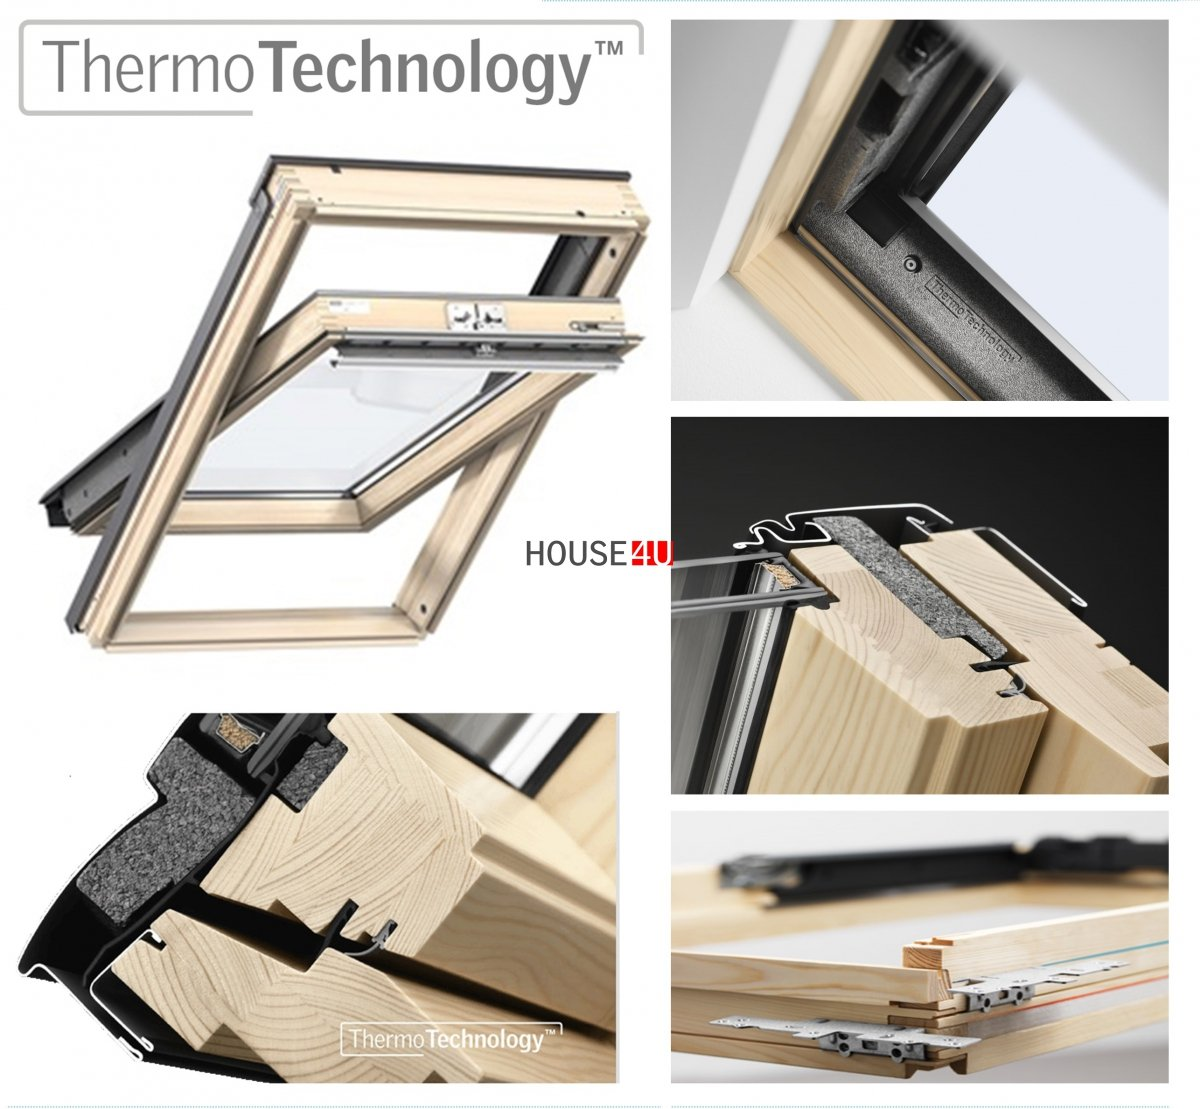 outlet: velux dachfenster gzl 1051 mk06 78x118 aus holz